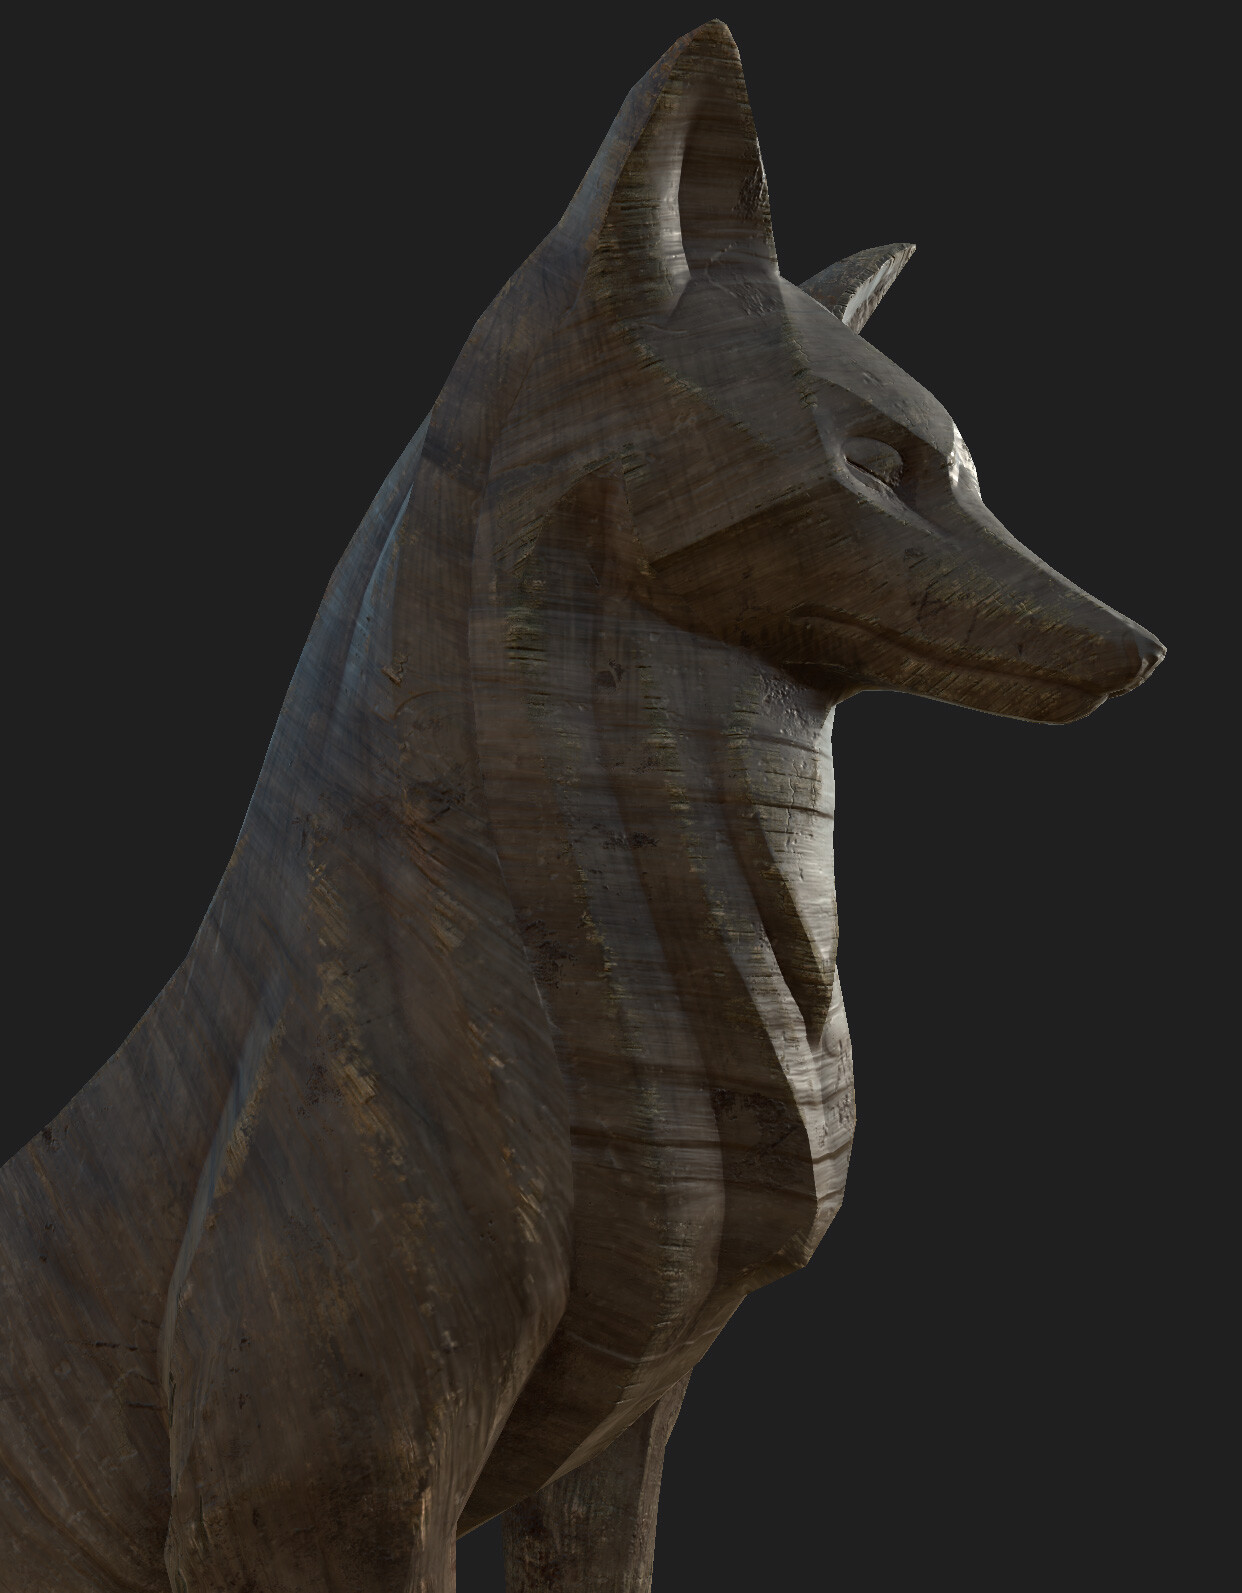 Rendered in Substance Painter